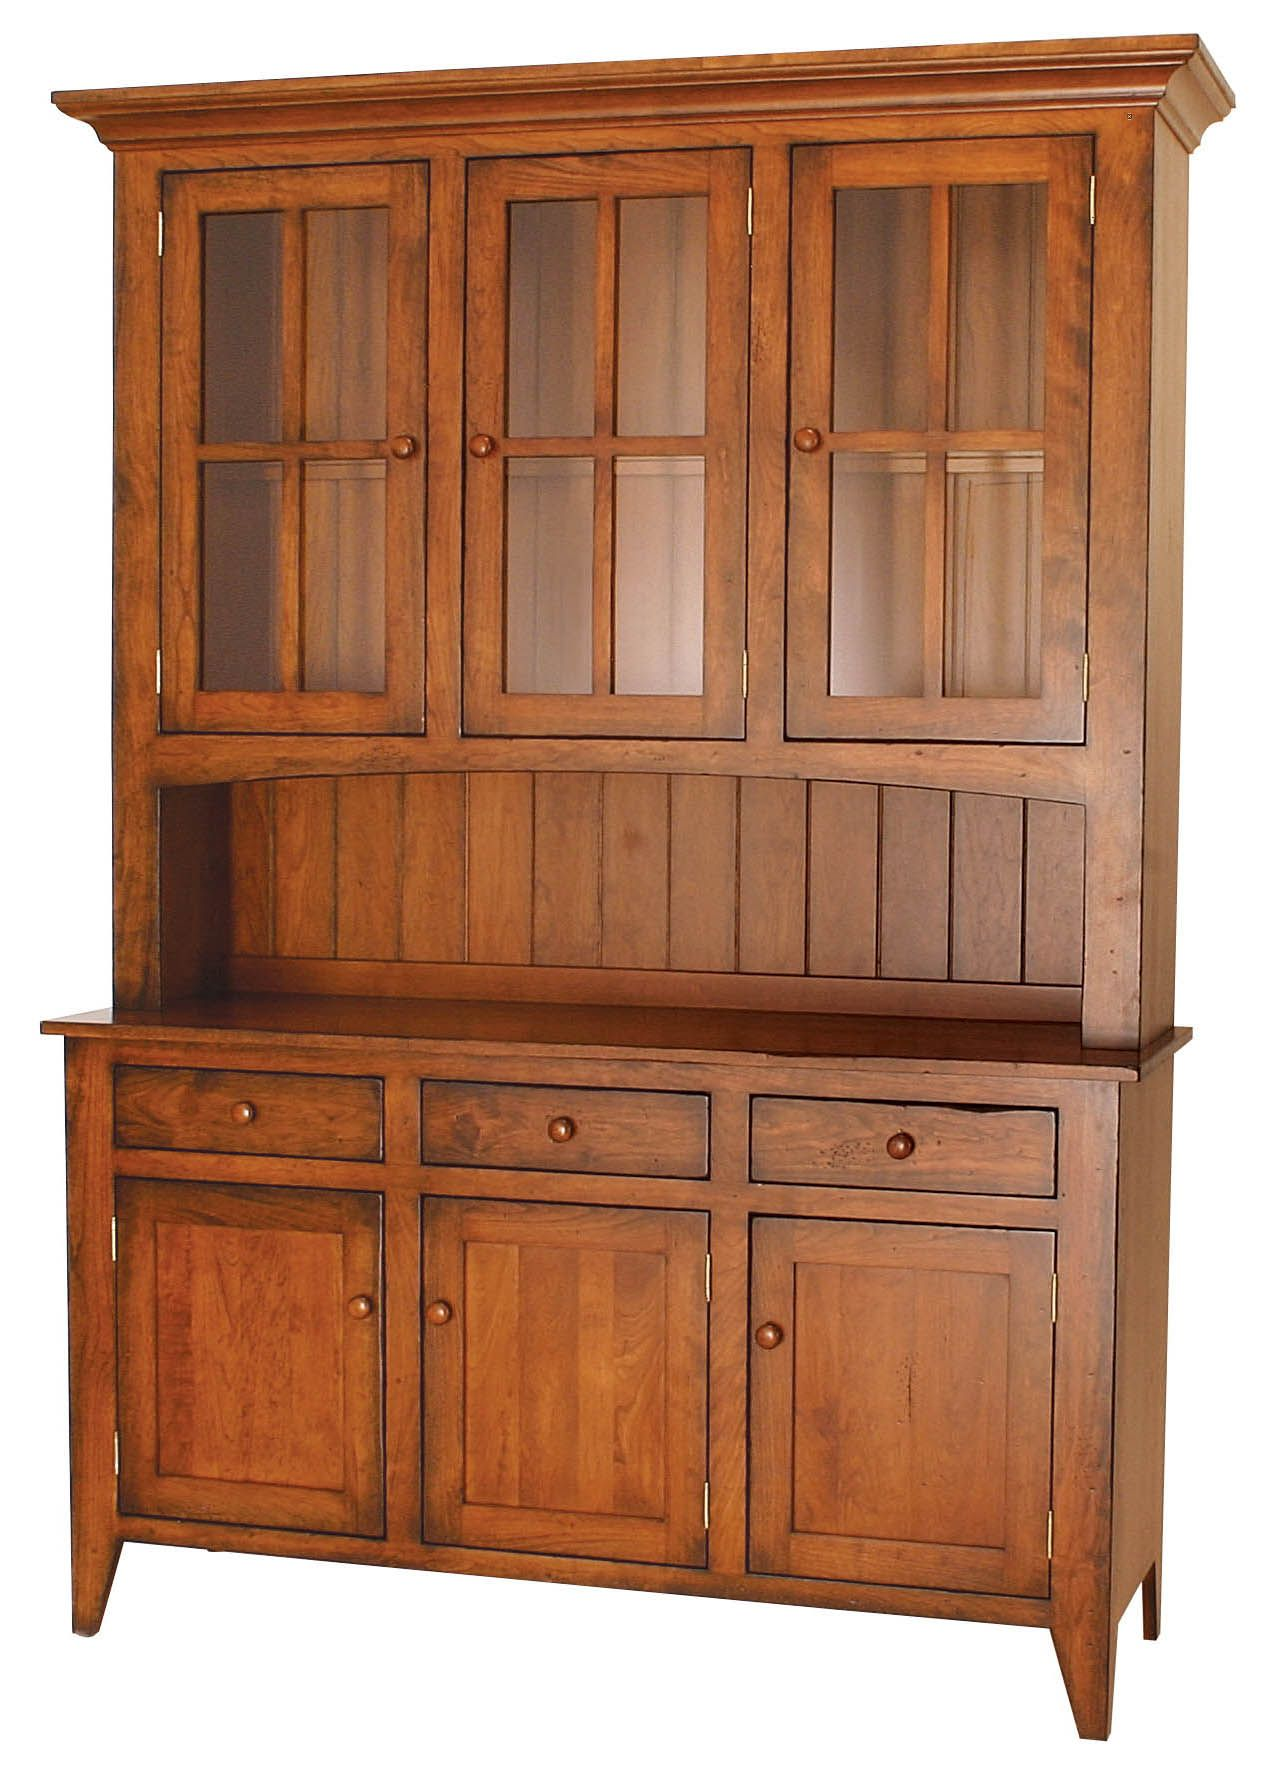 Ashville Farmhouse Cherry Wood Hutch Amish Furniture